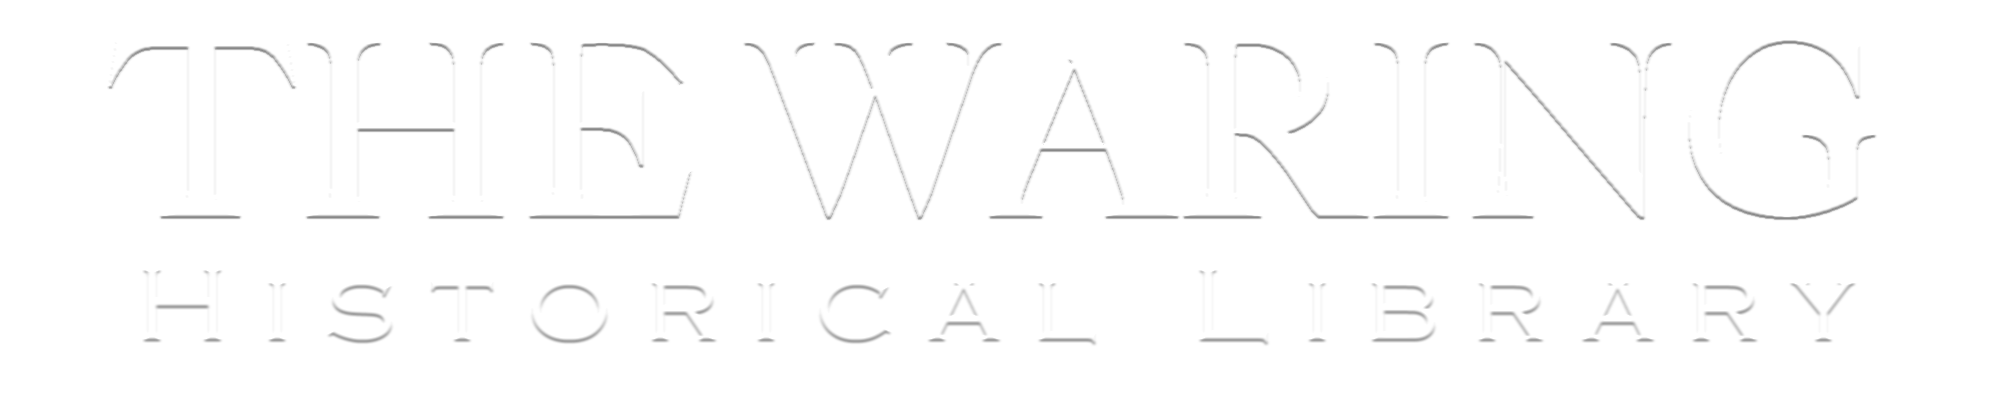 Waring Historical Library Logo text